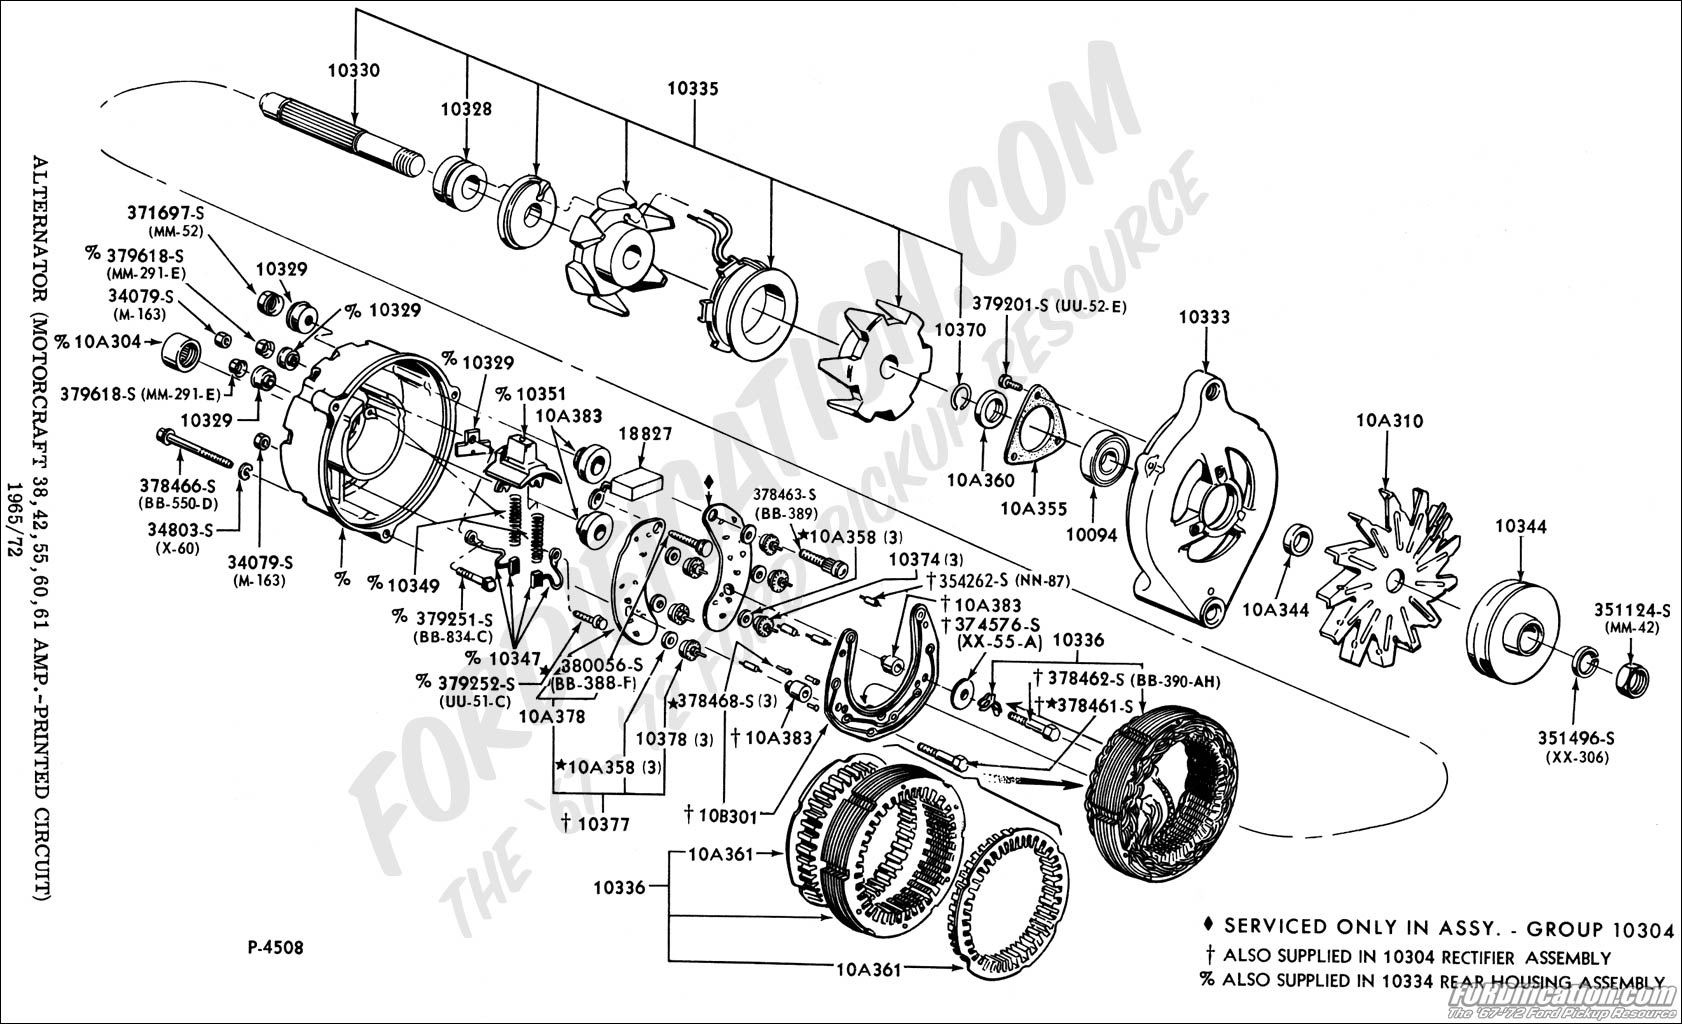 Ford Truck Technical Drawings And Schematics Section I 350 Chevy Alternator Wiring Diagram As Well 1994 Electrical